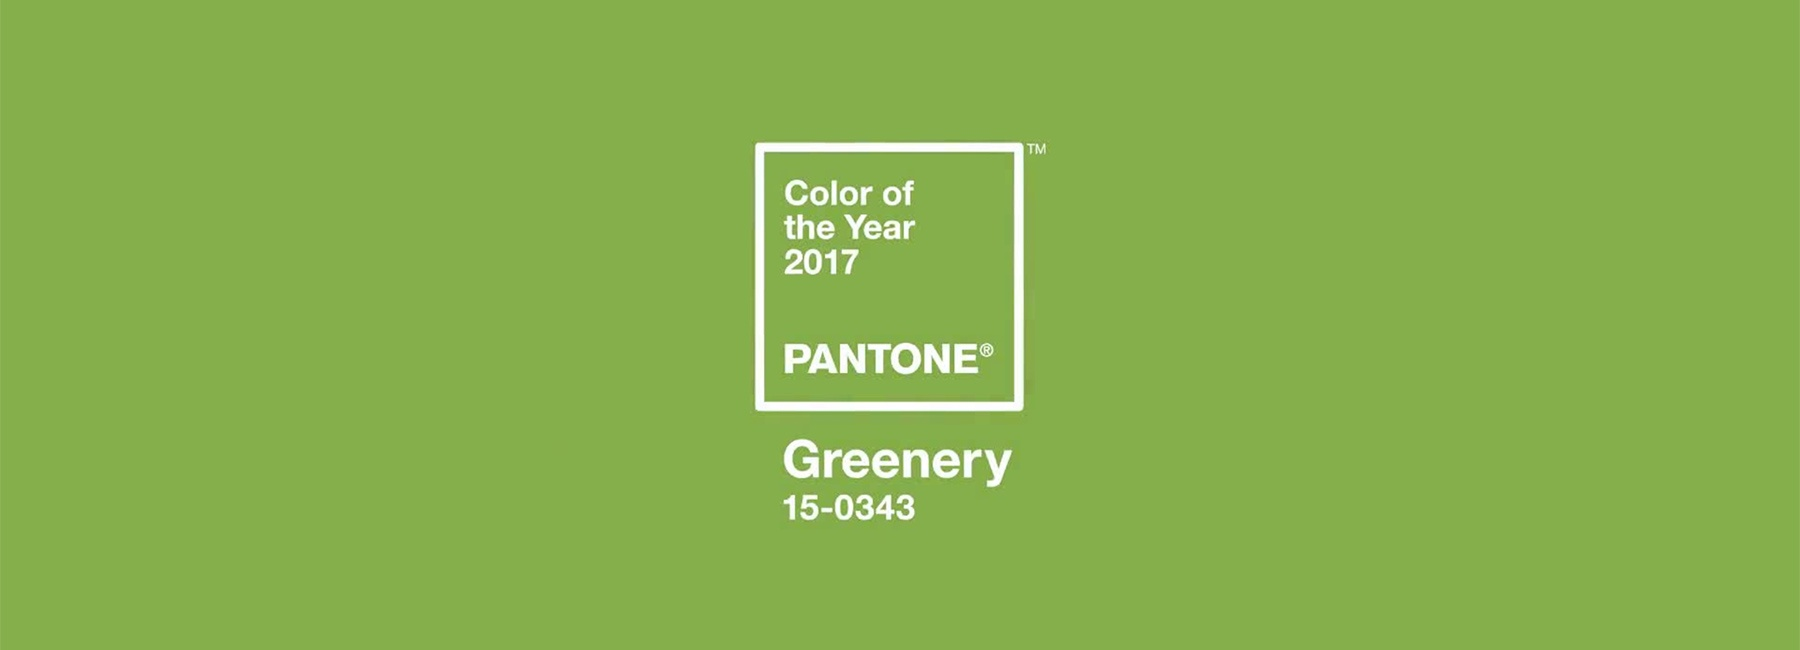 Pantone Color of the Year: Greenary